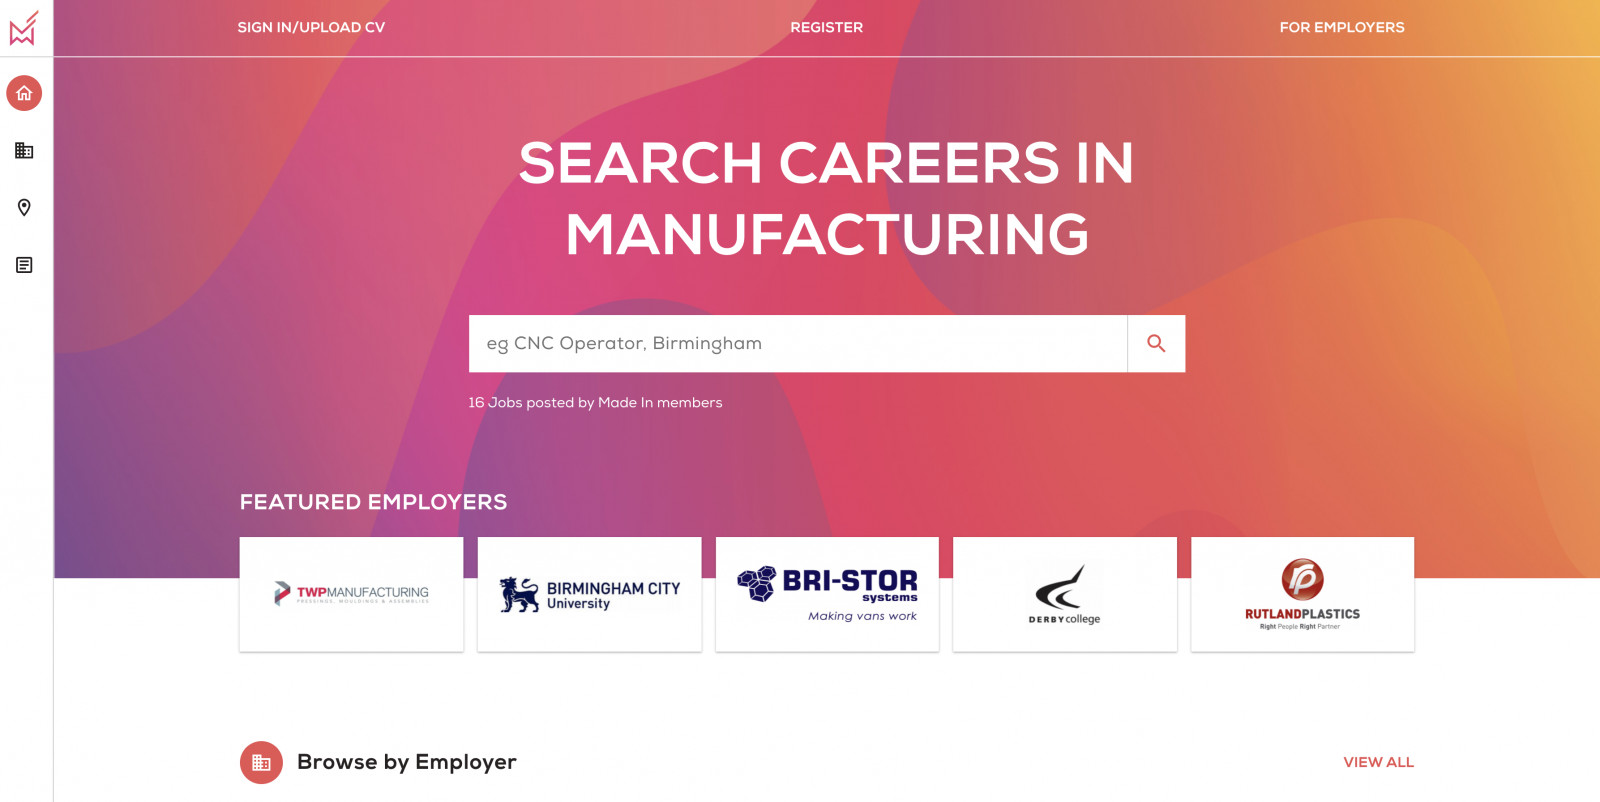 A Brand New Website for British Industry to Recruit Skilled Employees